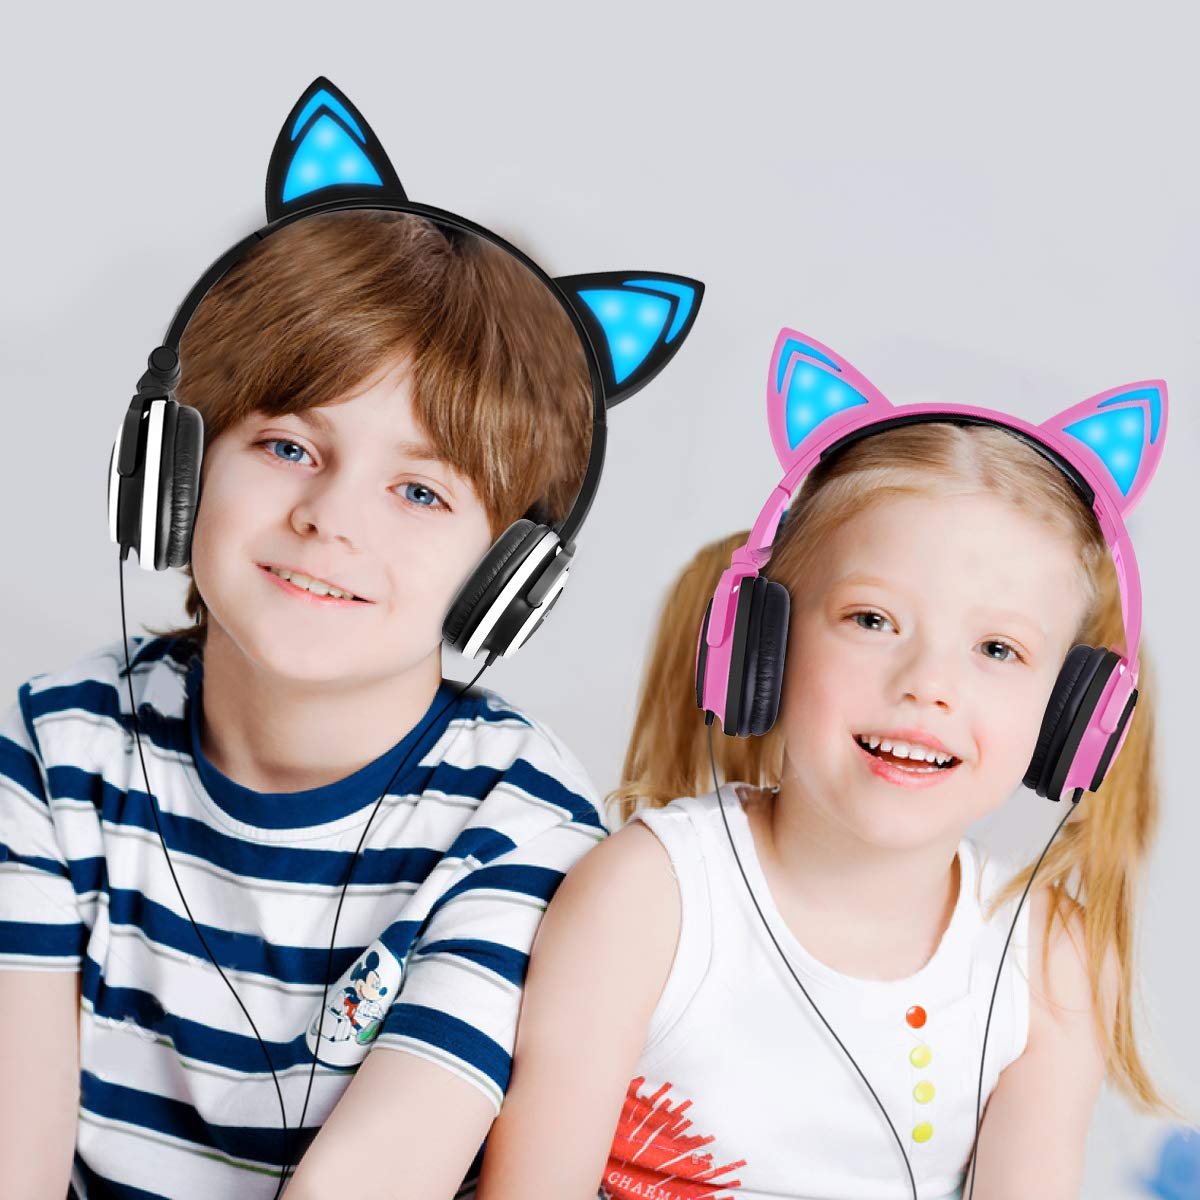 Cat Ear Headphone,LOBKIN Foldable Wired Over Ear Kids Headphone with Glowing Light for Girls Children Cosplay Fans,Compatible for iPhone,Android Phone (Pink)